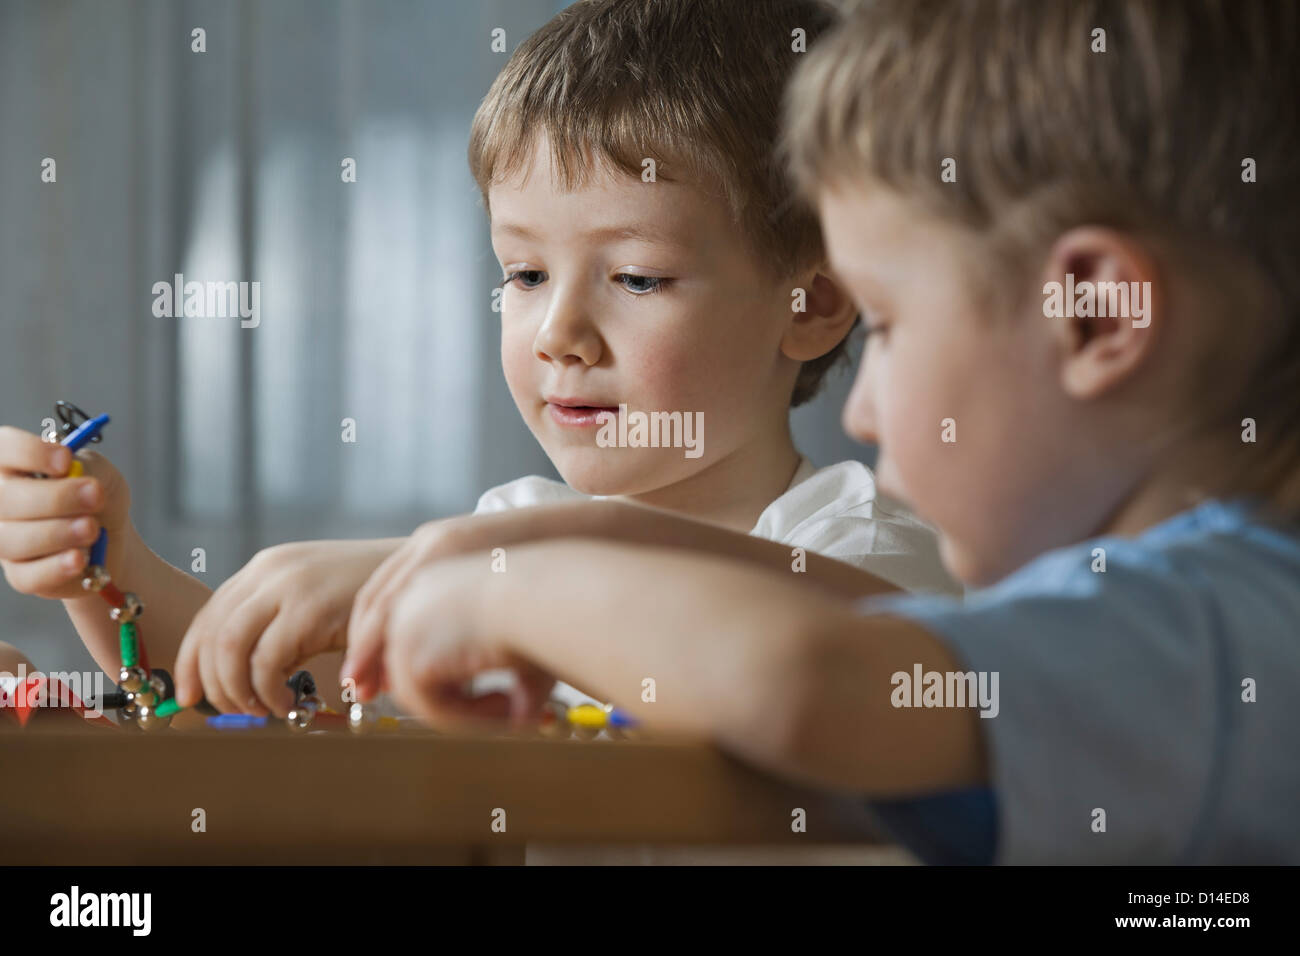 young boys playing with shape game Stock Photo